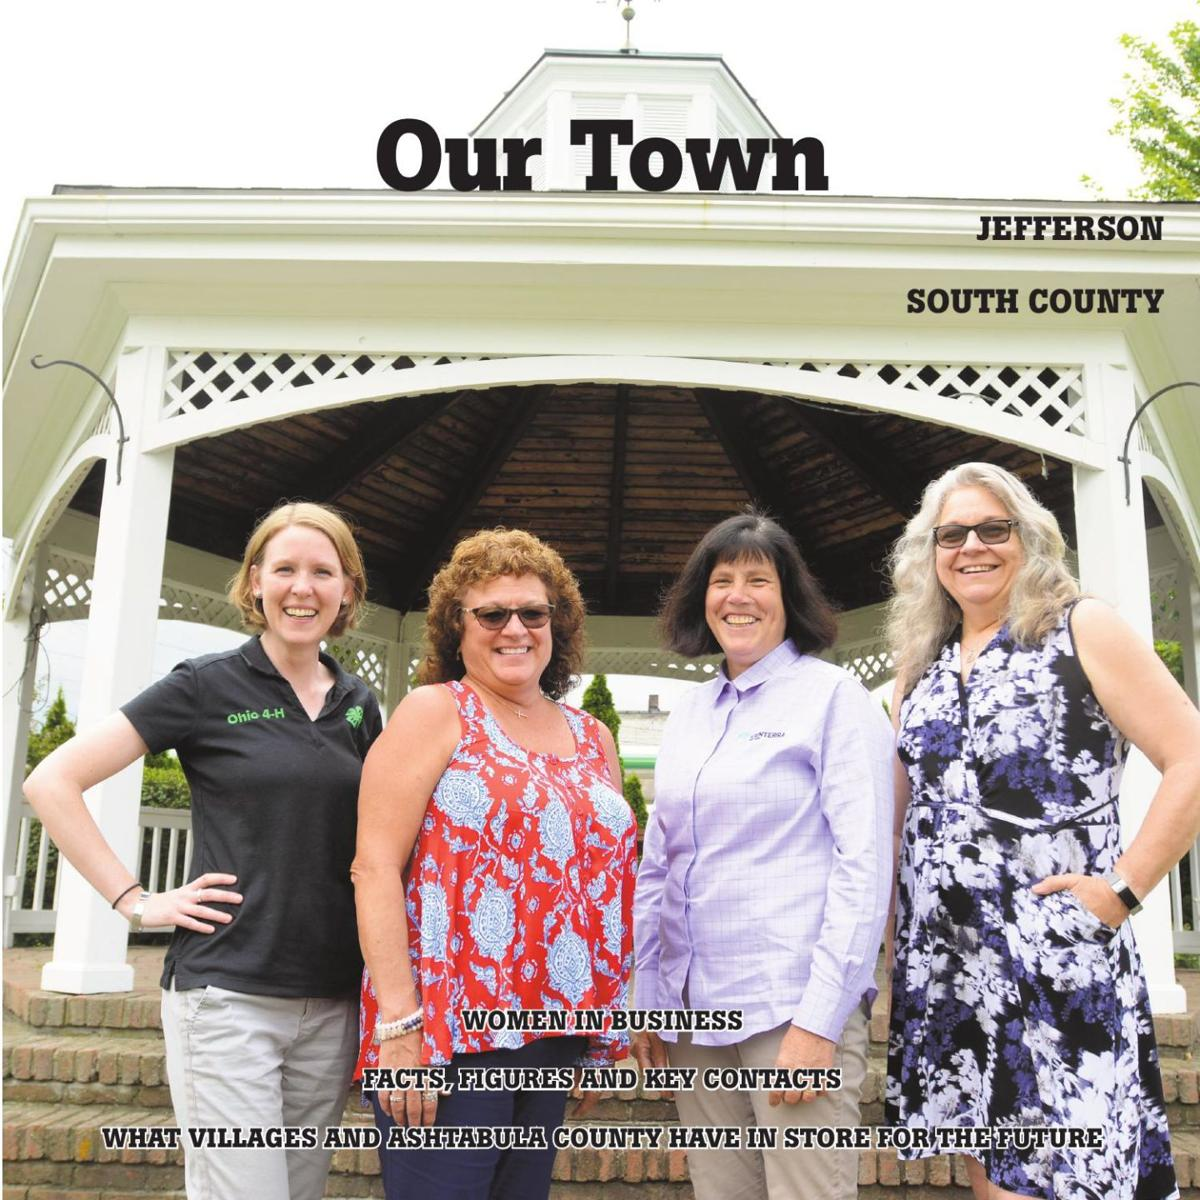 OUR TOWN - JEFFERSON